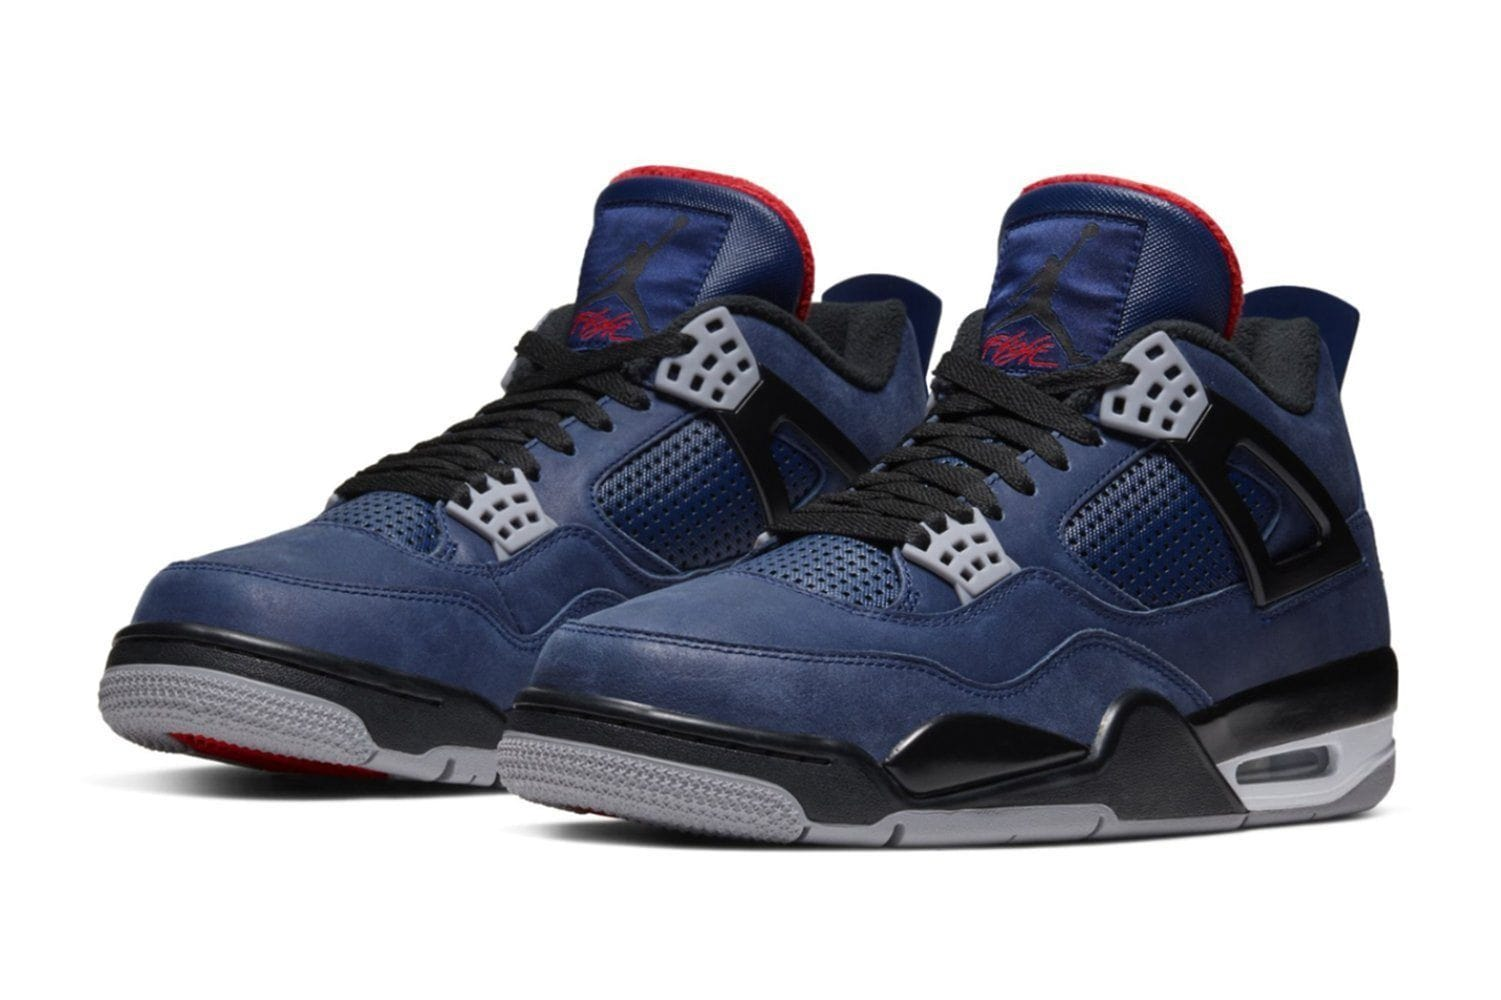 AIR JORDAN 4 RETRO WNTR - CQ9597-401 MENS FOOTWEAR JORDAN